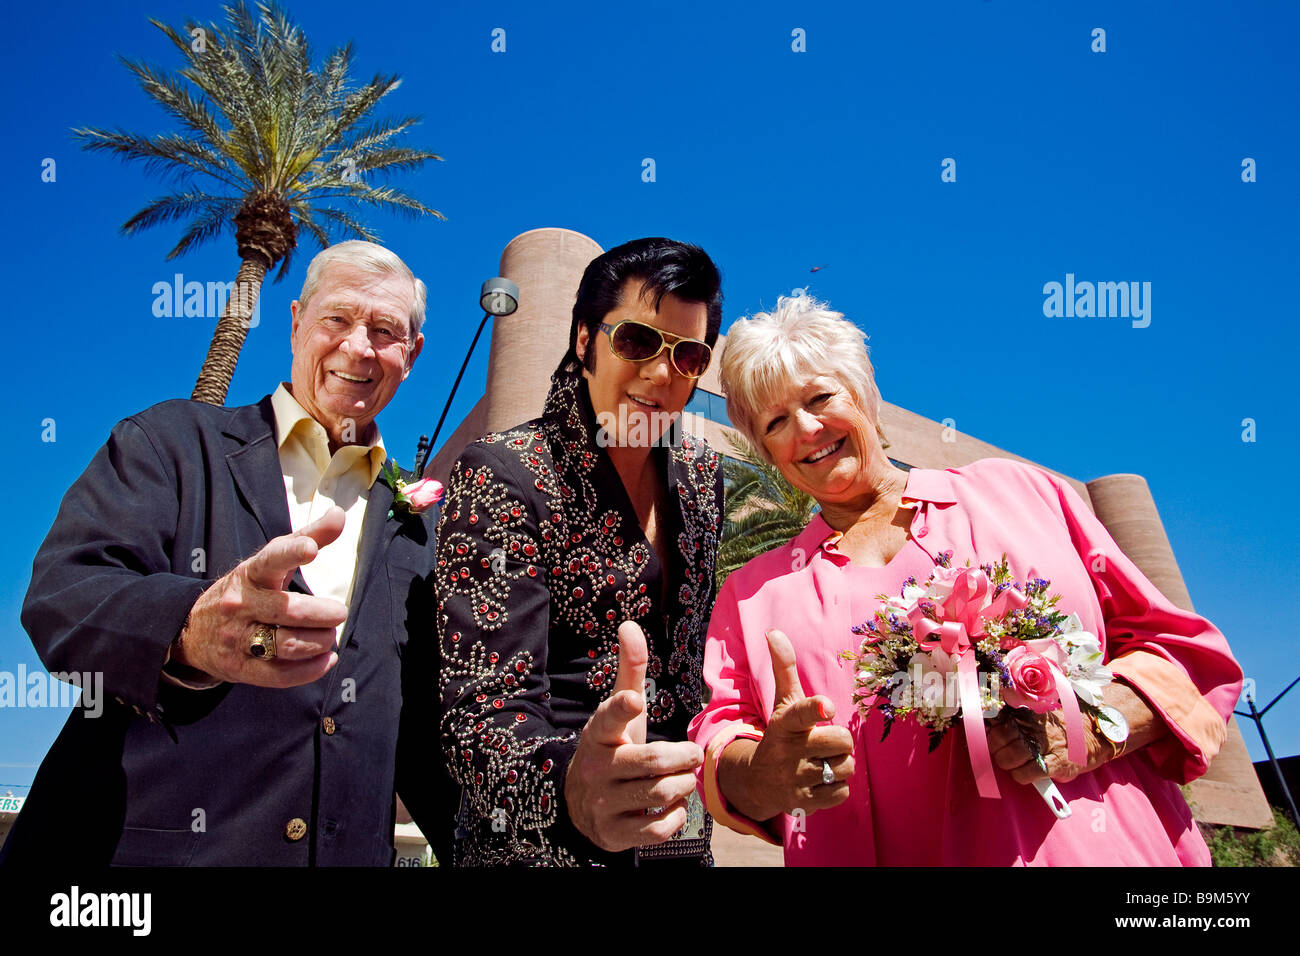 United States Nevada Las Vegas The Strip Married Couple In Front